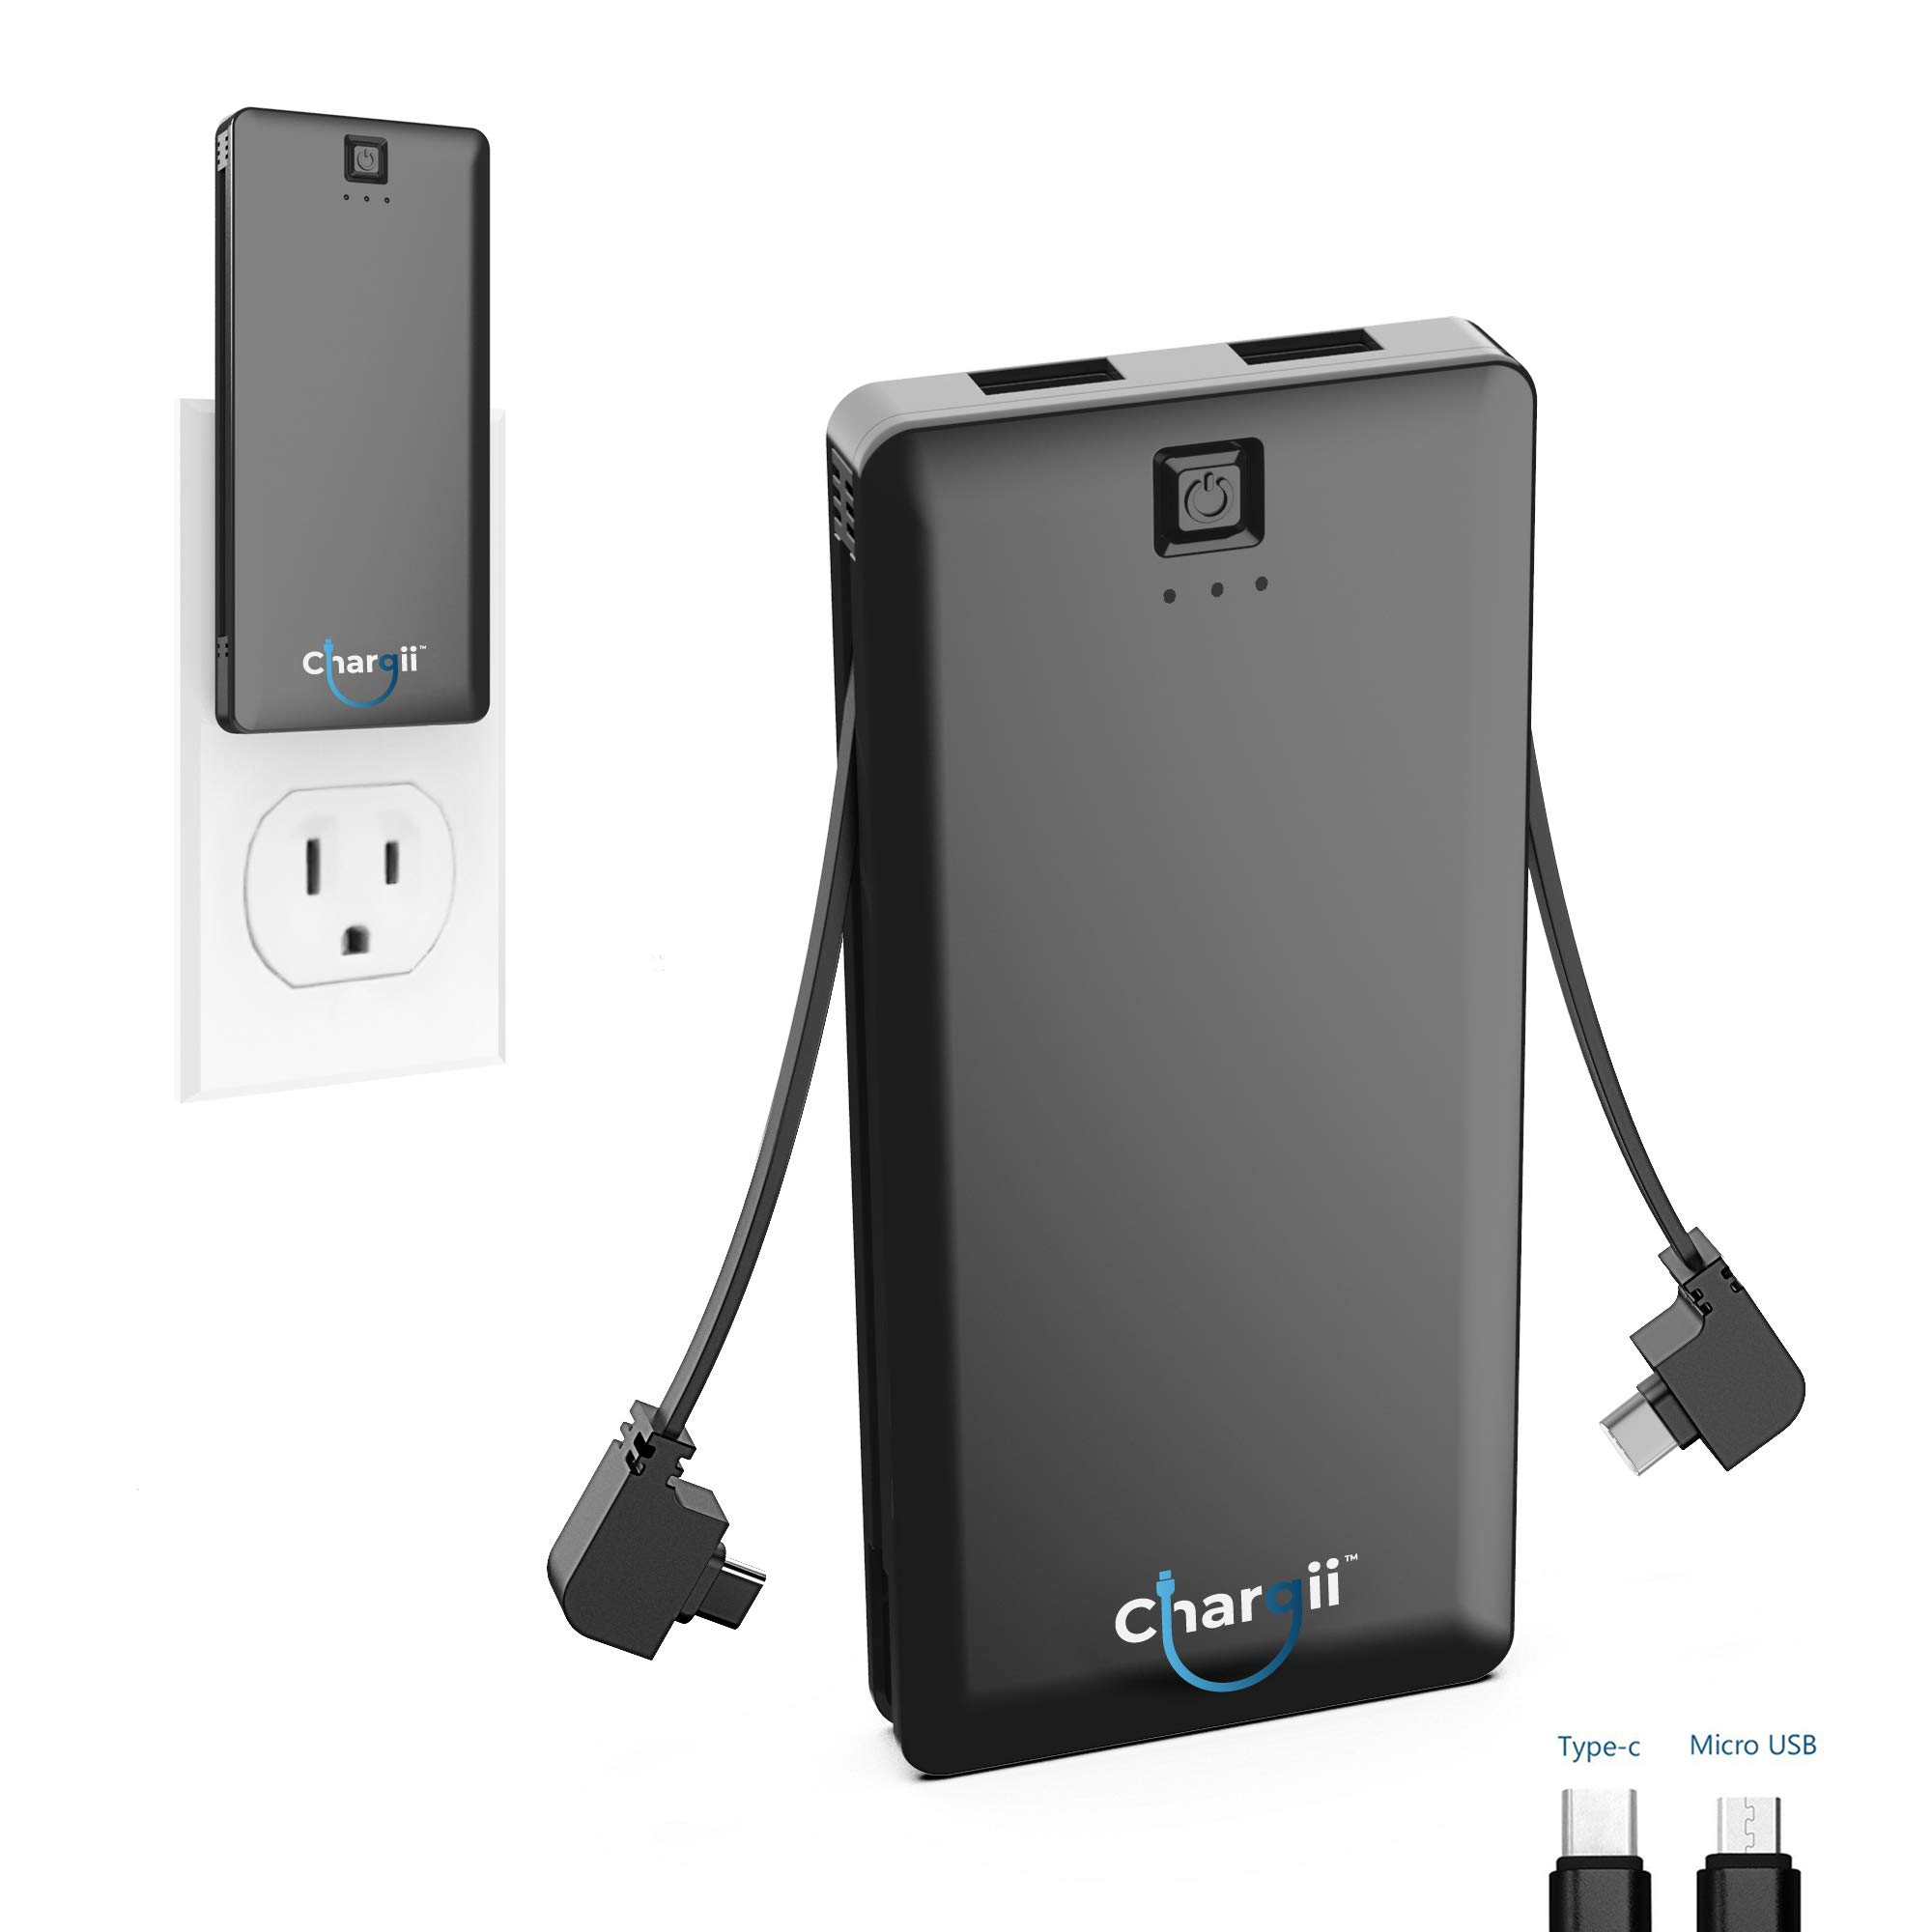 Chargii - Power Bank - All-in-One Portable Charger - Cell Phone Battery Backup - Built-in Wall Plug AC Adapter - 2 USB Ports - 5000 mAH (Black, iPhone/Android)